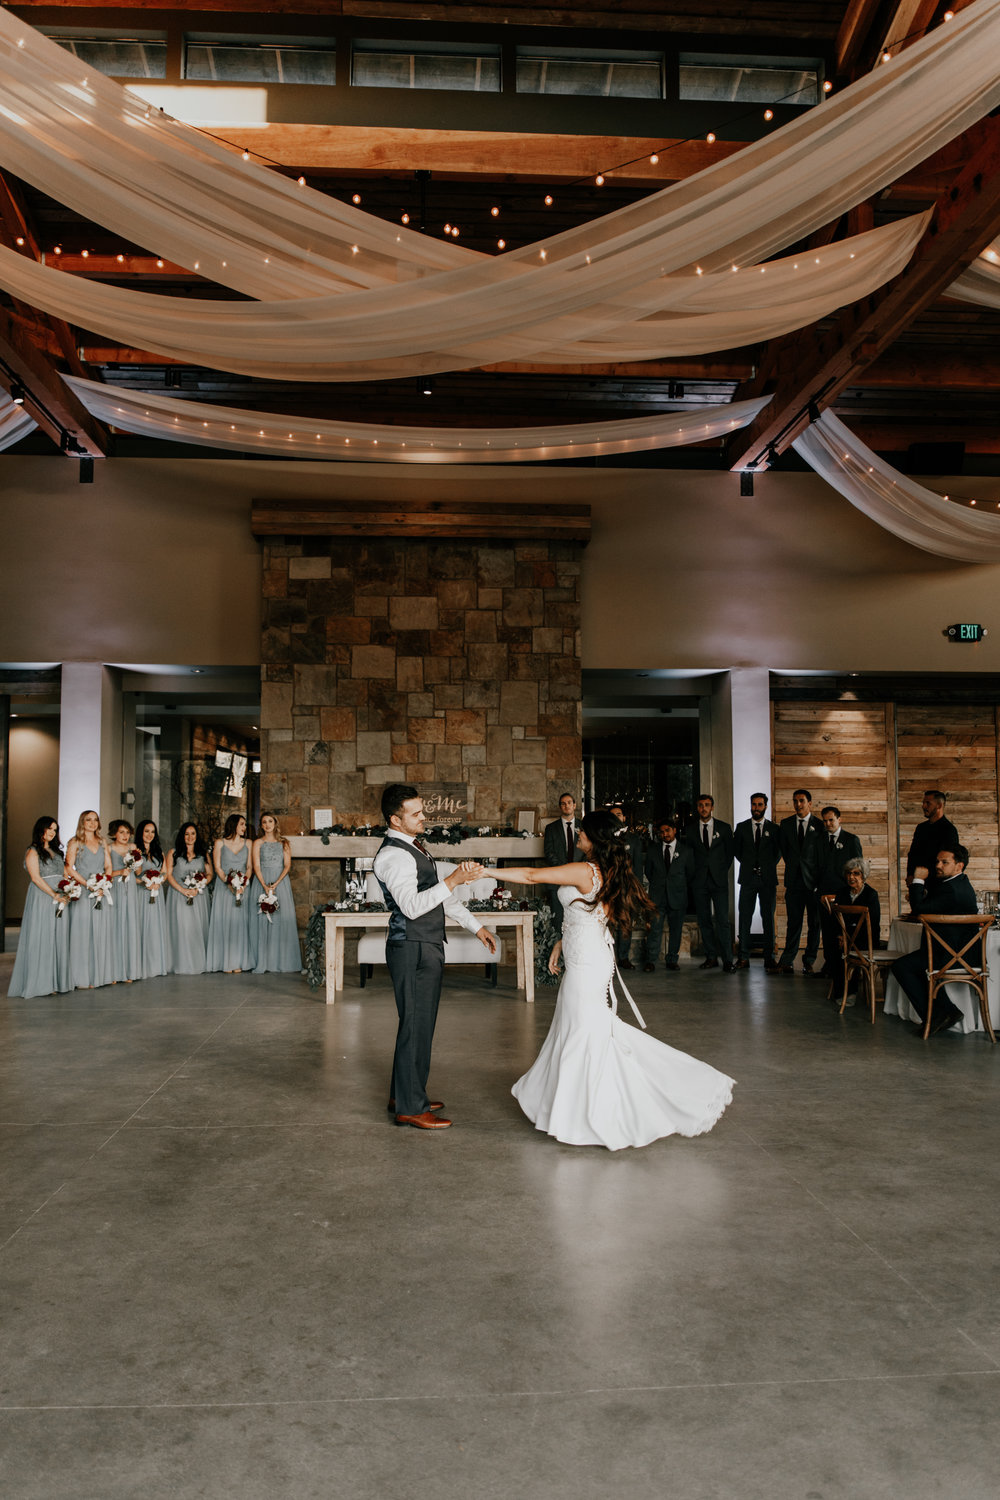 First dance under the hanging lights | San Diego wedding photographer